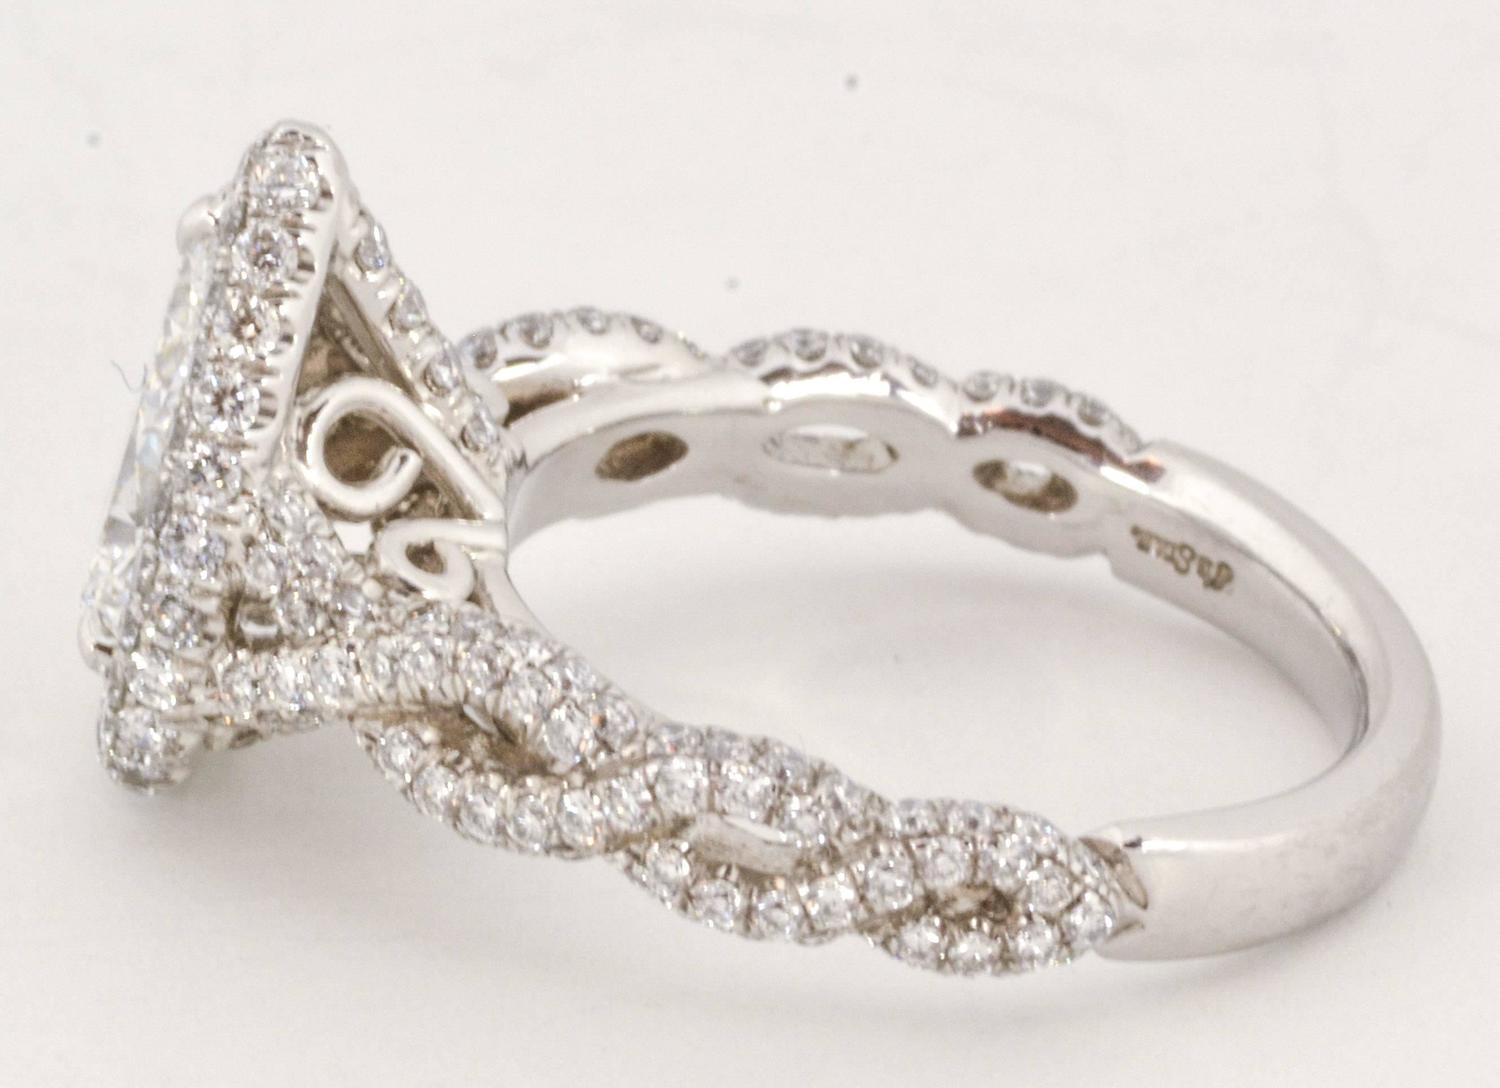 1 38 Carat Pear Shaped Diamond Platinum Engagement Ring For Sale at 1stdibs